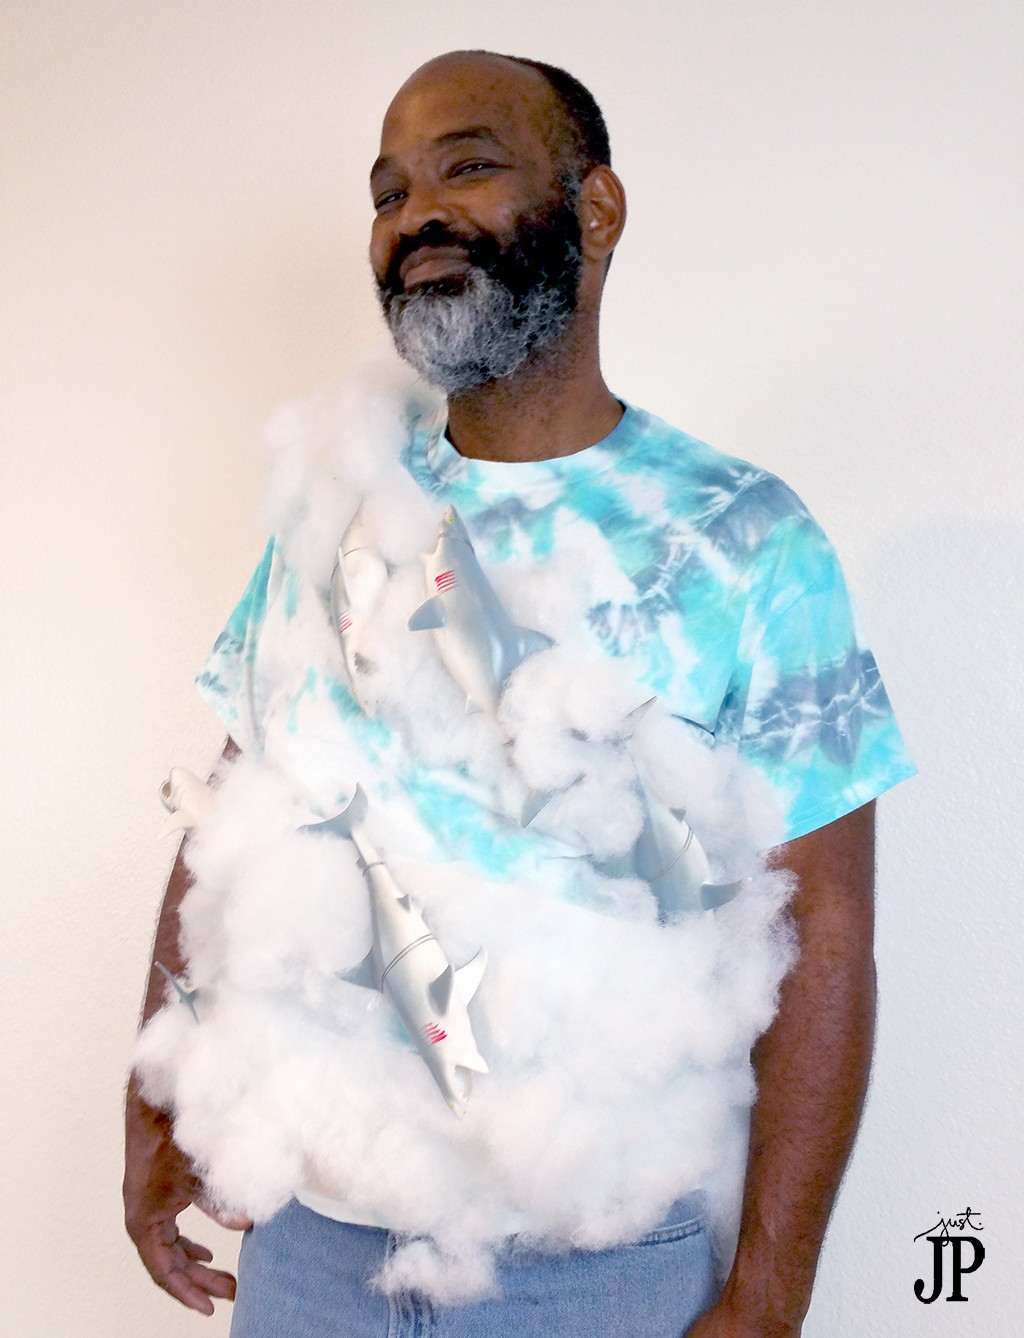 DIY-Sharknado-Costume-Tie-Dye-GUY-Jpriest